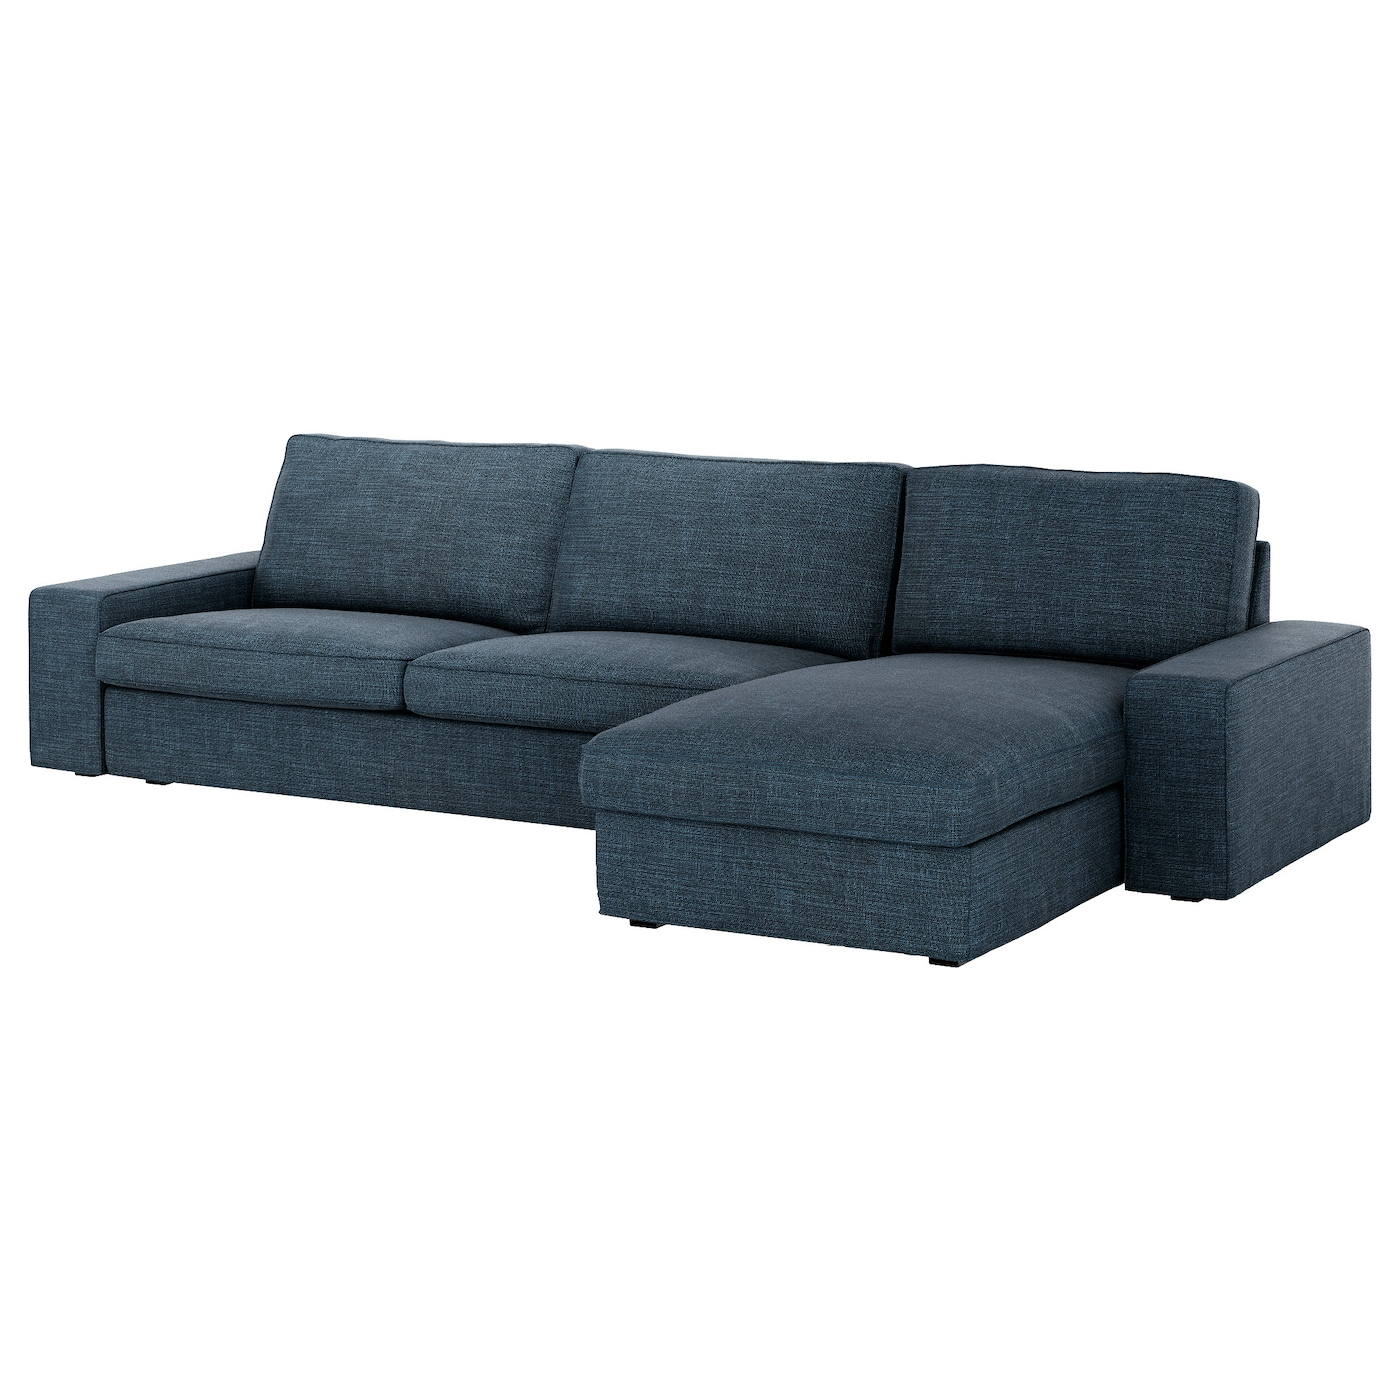 kivik 4 seat sofa with chaise longue hillared dark blue ikea. Black Bedroom Furniture Sets. Home Design Ideas